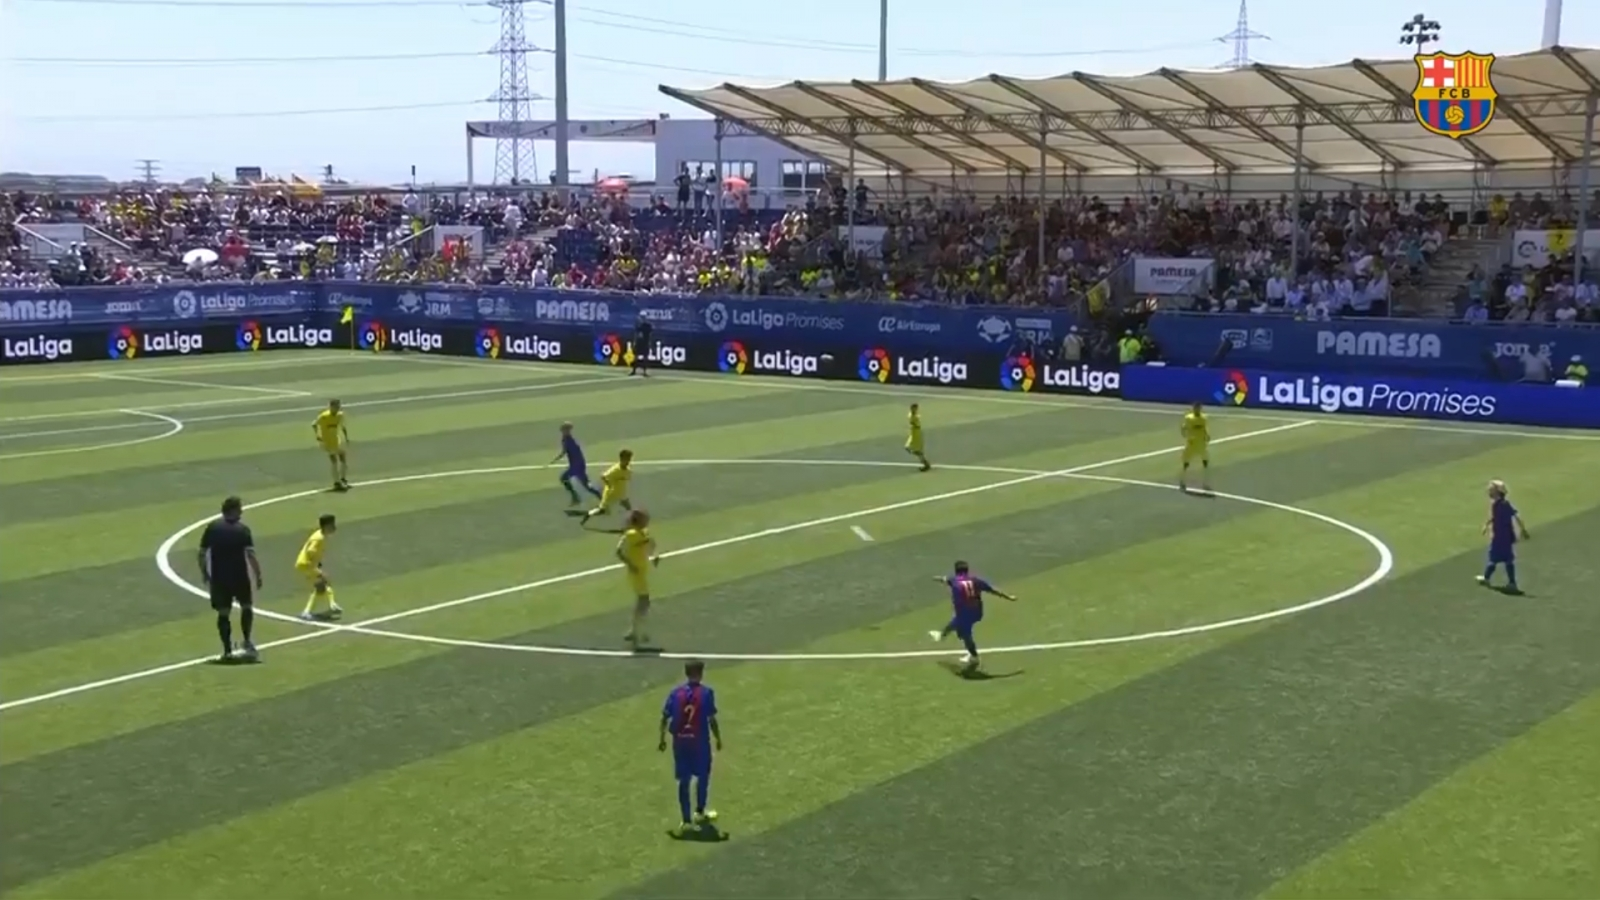 Watch Barcelona youngster score an outrageous wonder goal